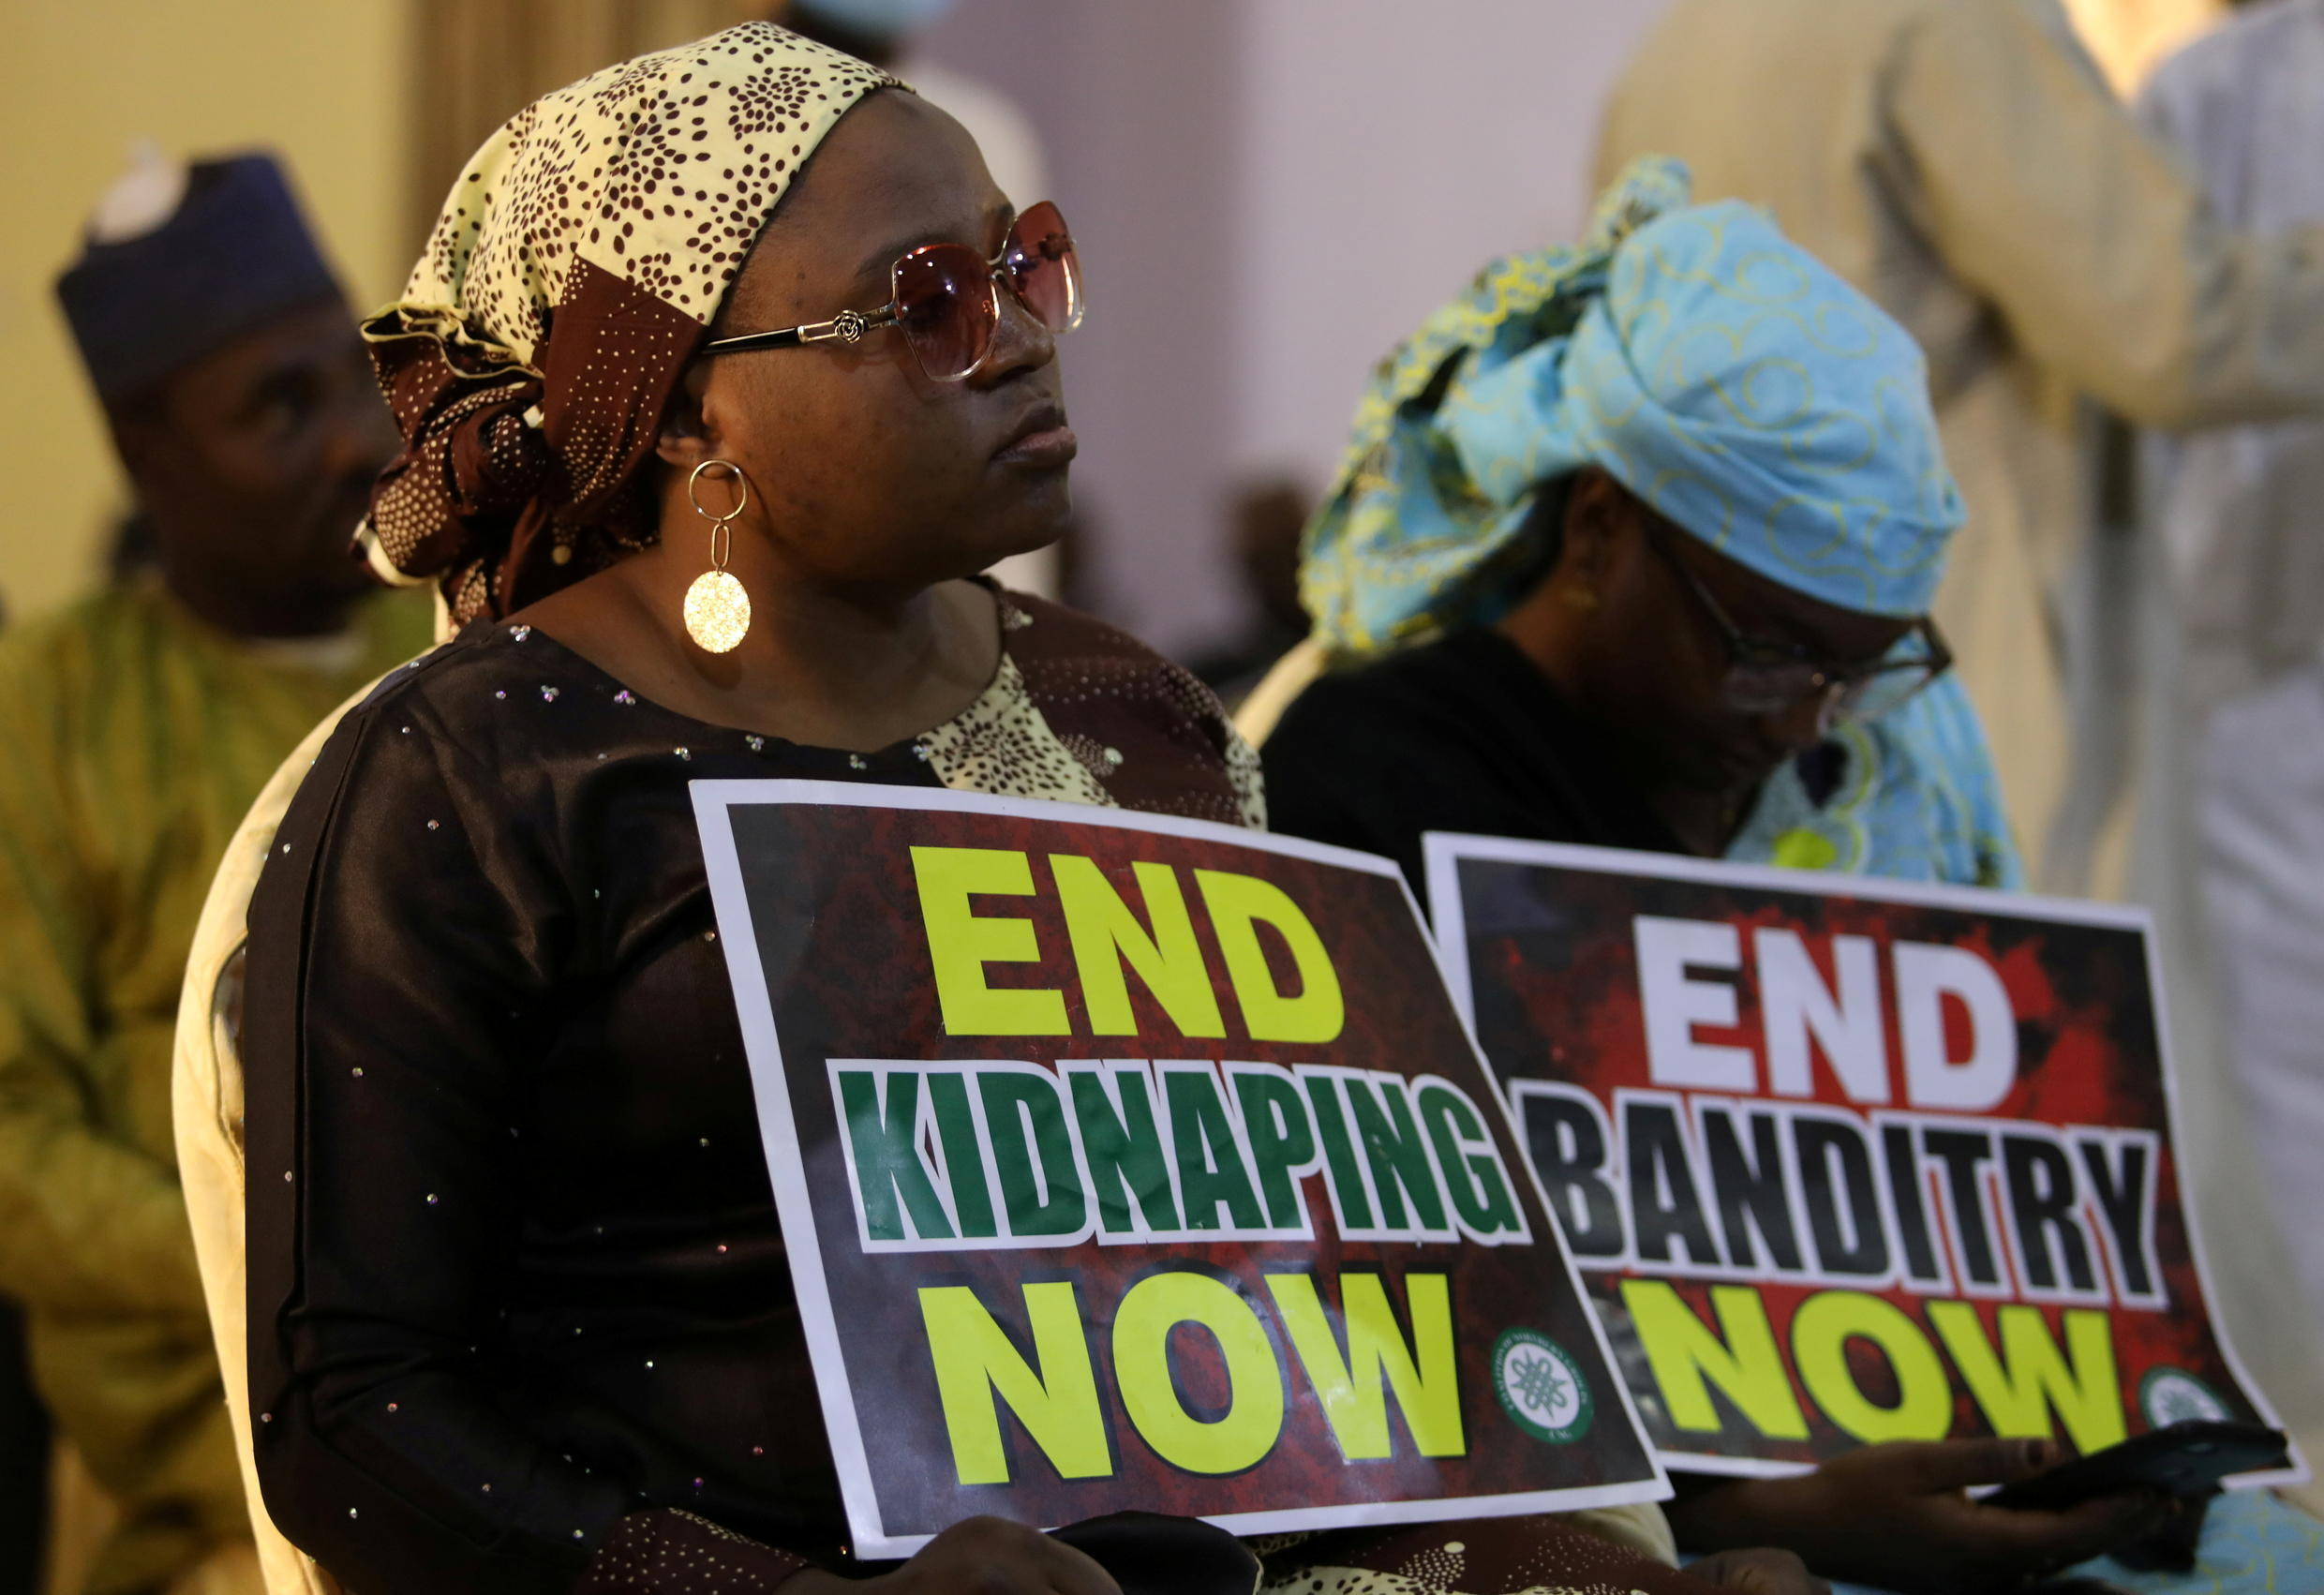 2021-06-11T102051Z_639161270_RC2AYN95KLL0_RTRMADP_3_NIGERIA-SECURITY-KIDNAPPINGS